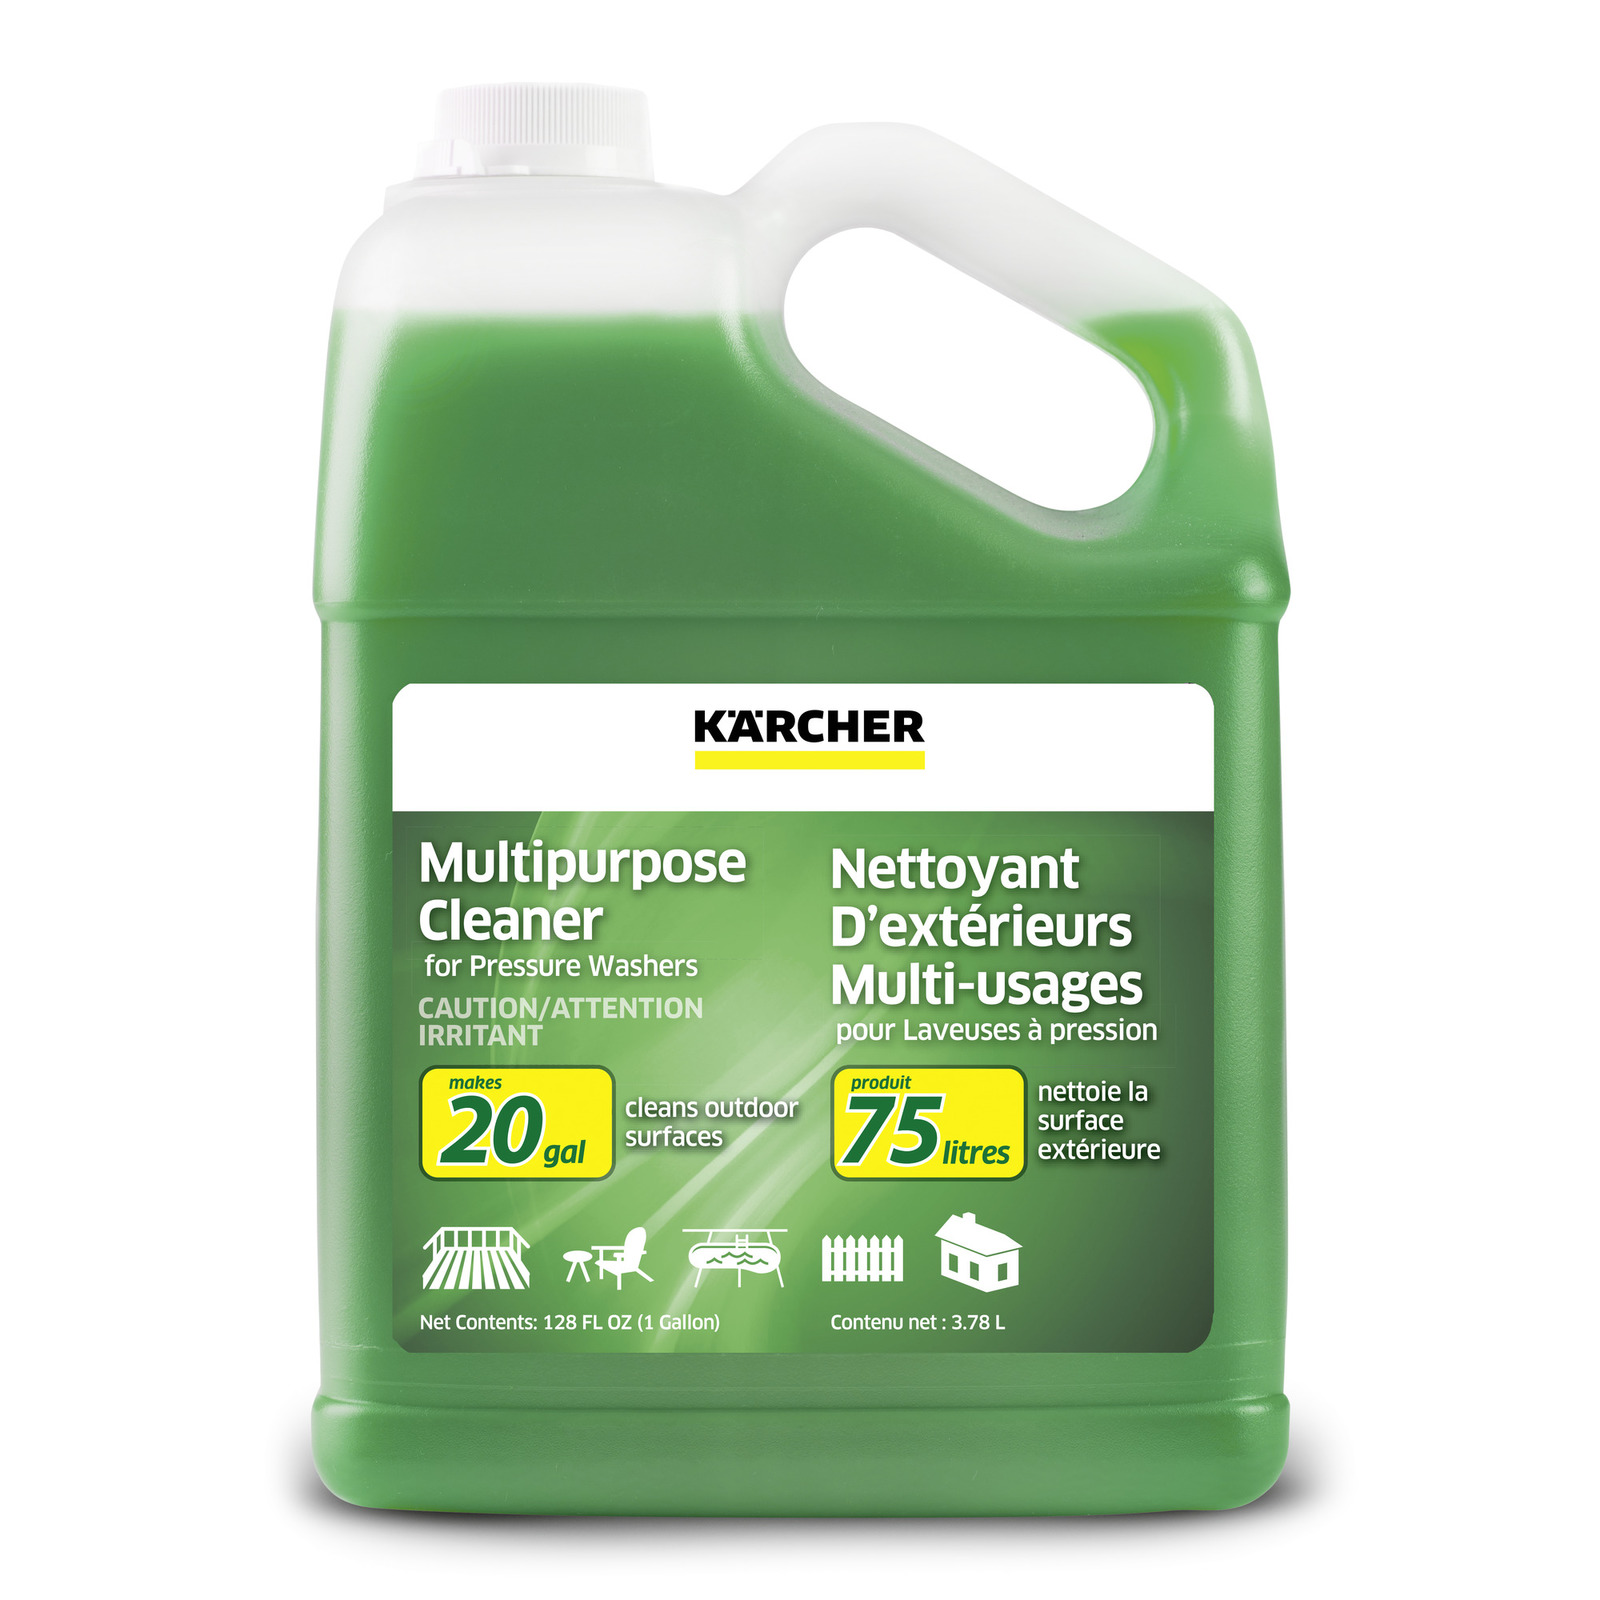 Karcher 20X multi-purpose cleaner